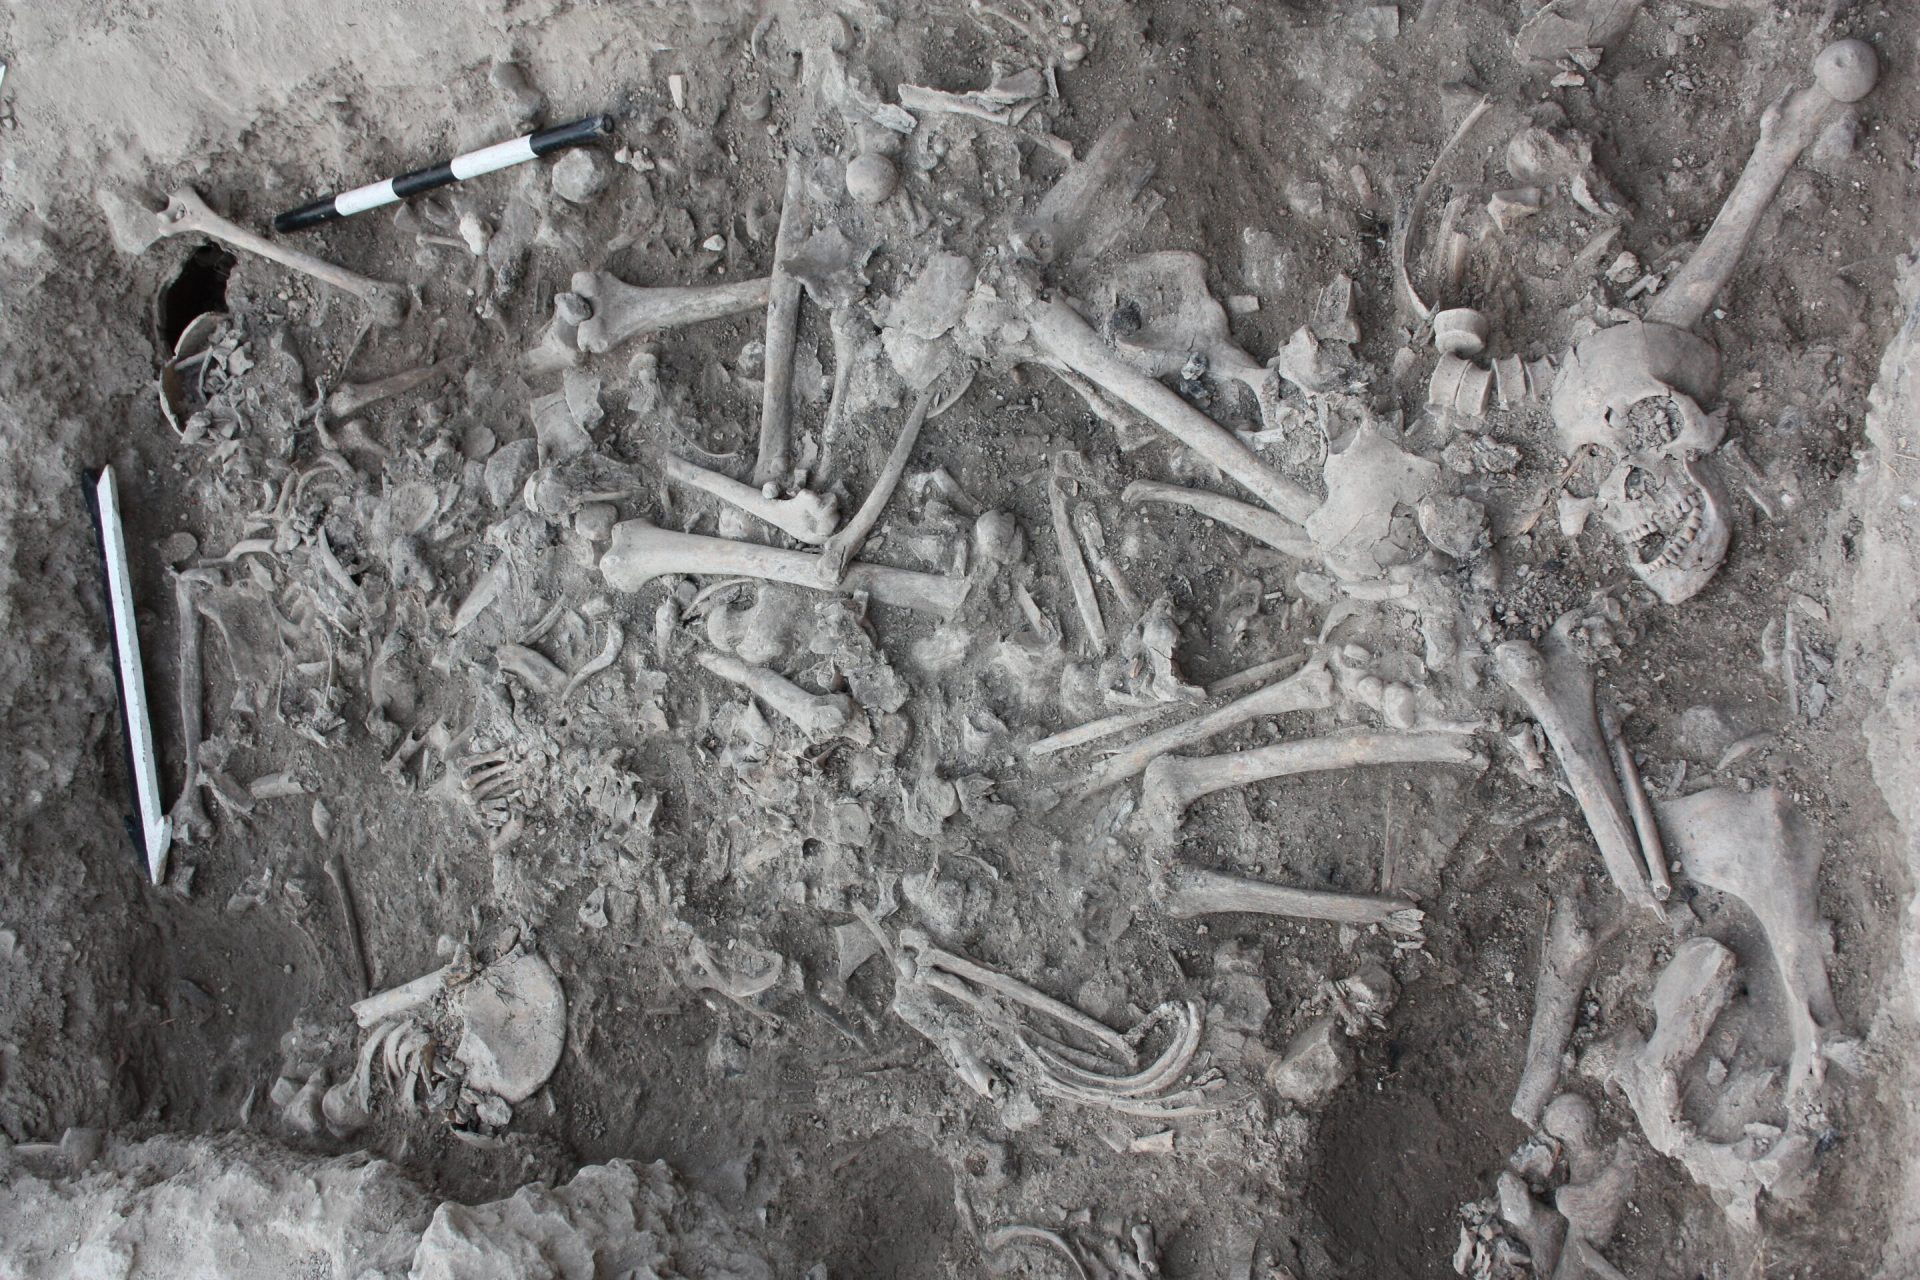 The bones of the Crusaders found in a burial pit in Sidon, Lebanon. (Image: Claude Doumet-Serhal)